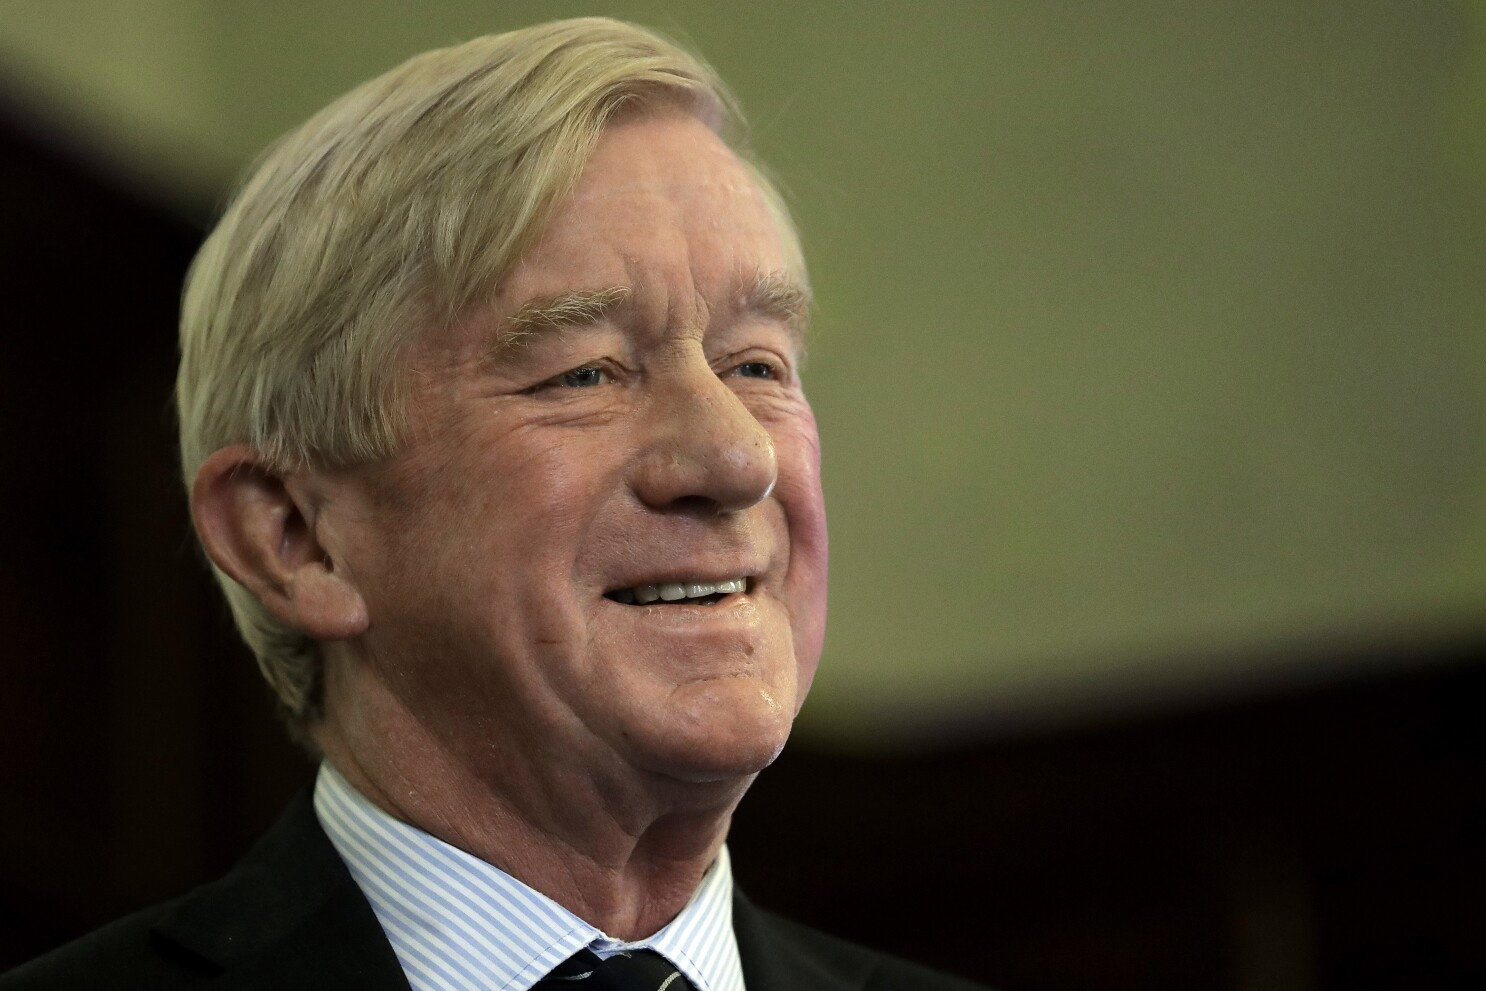 Republican presidential candidate Bill Weld joins African American faith leaders at forum in San Diego